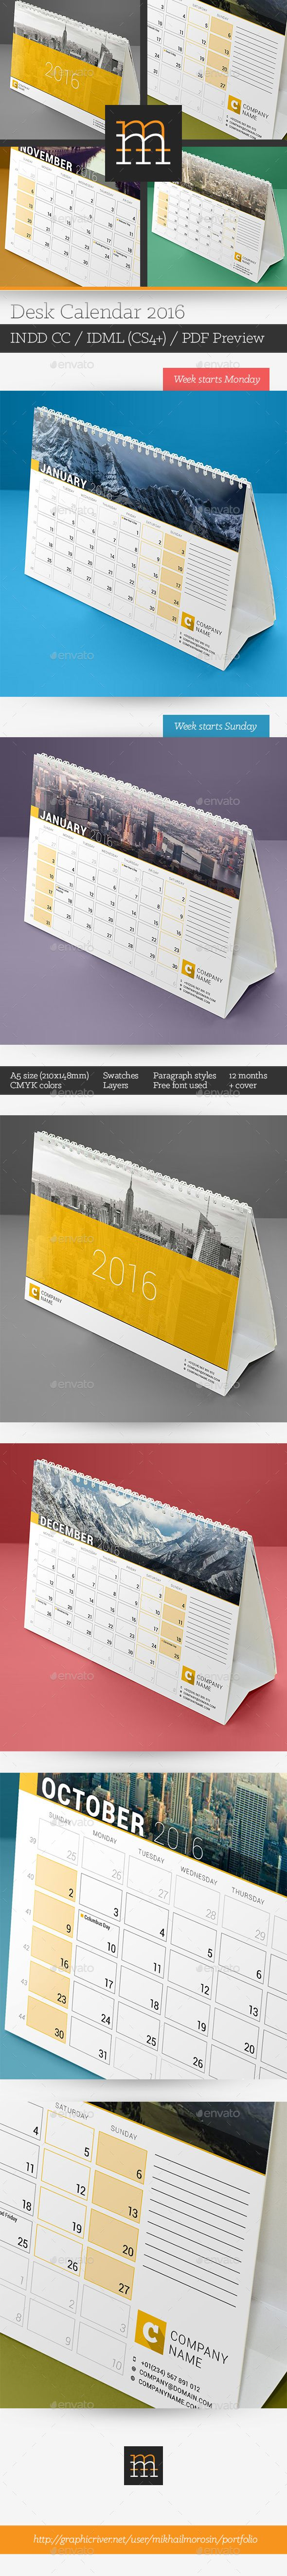 Desk Calendar   Desk Calendars Calendar  And Desks